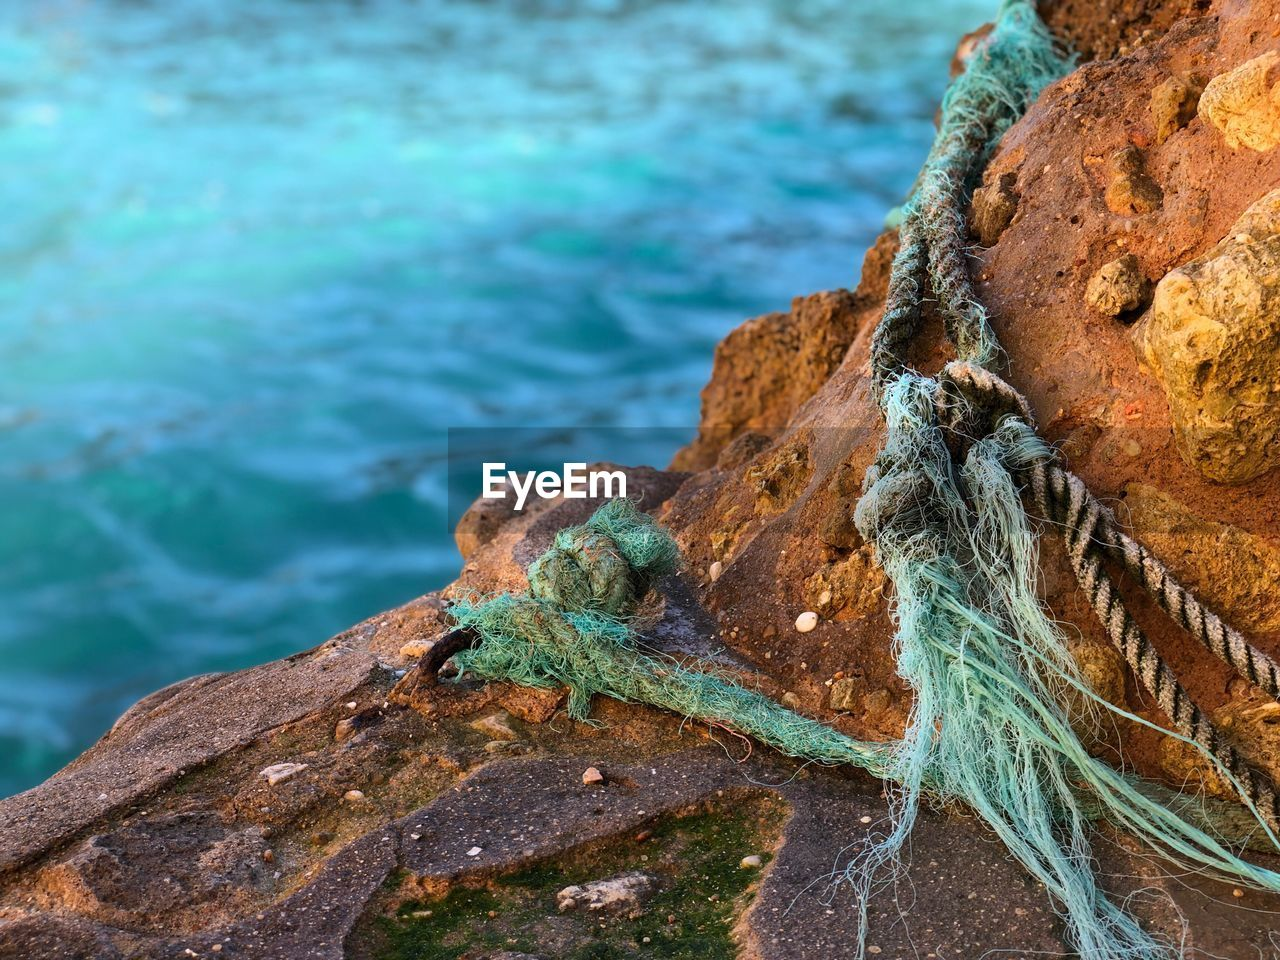 rock, water, sea, rock - object, solid, rope, strength, close-up, day, no people, focus on foreground, nature, textured, outdoors, beach, tied up, high angle view, metal, rough, turquoise colored